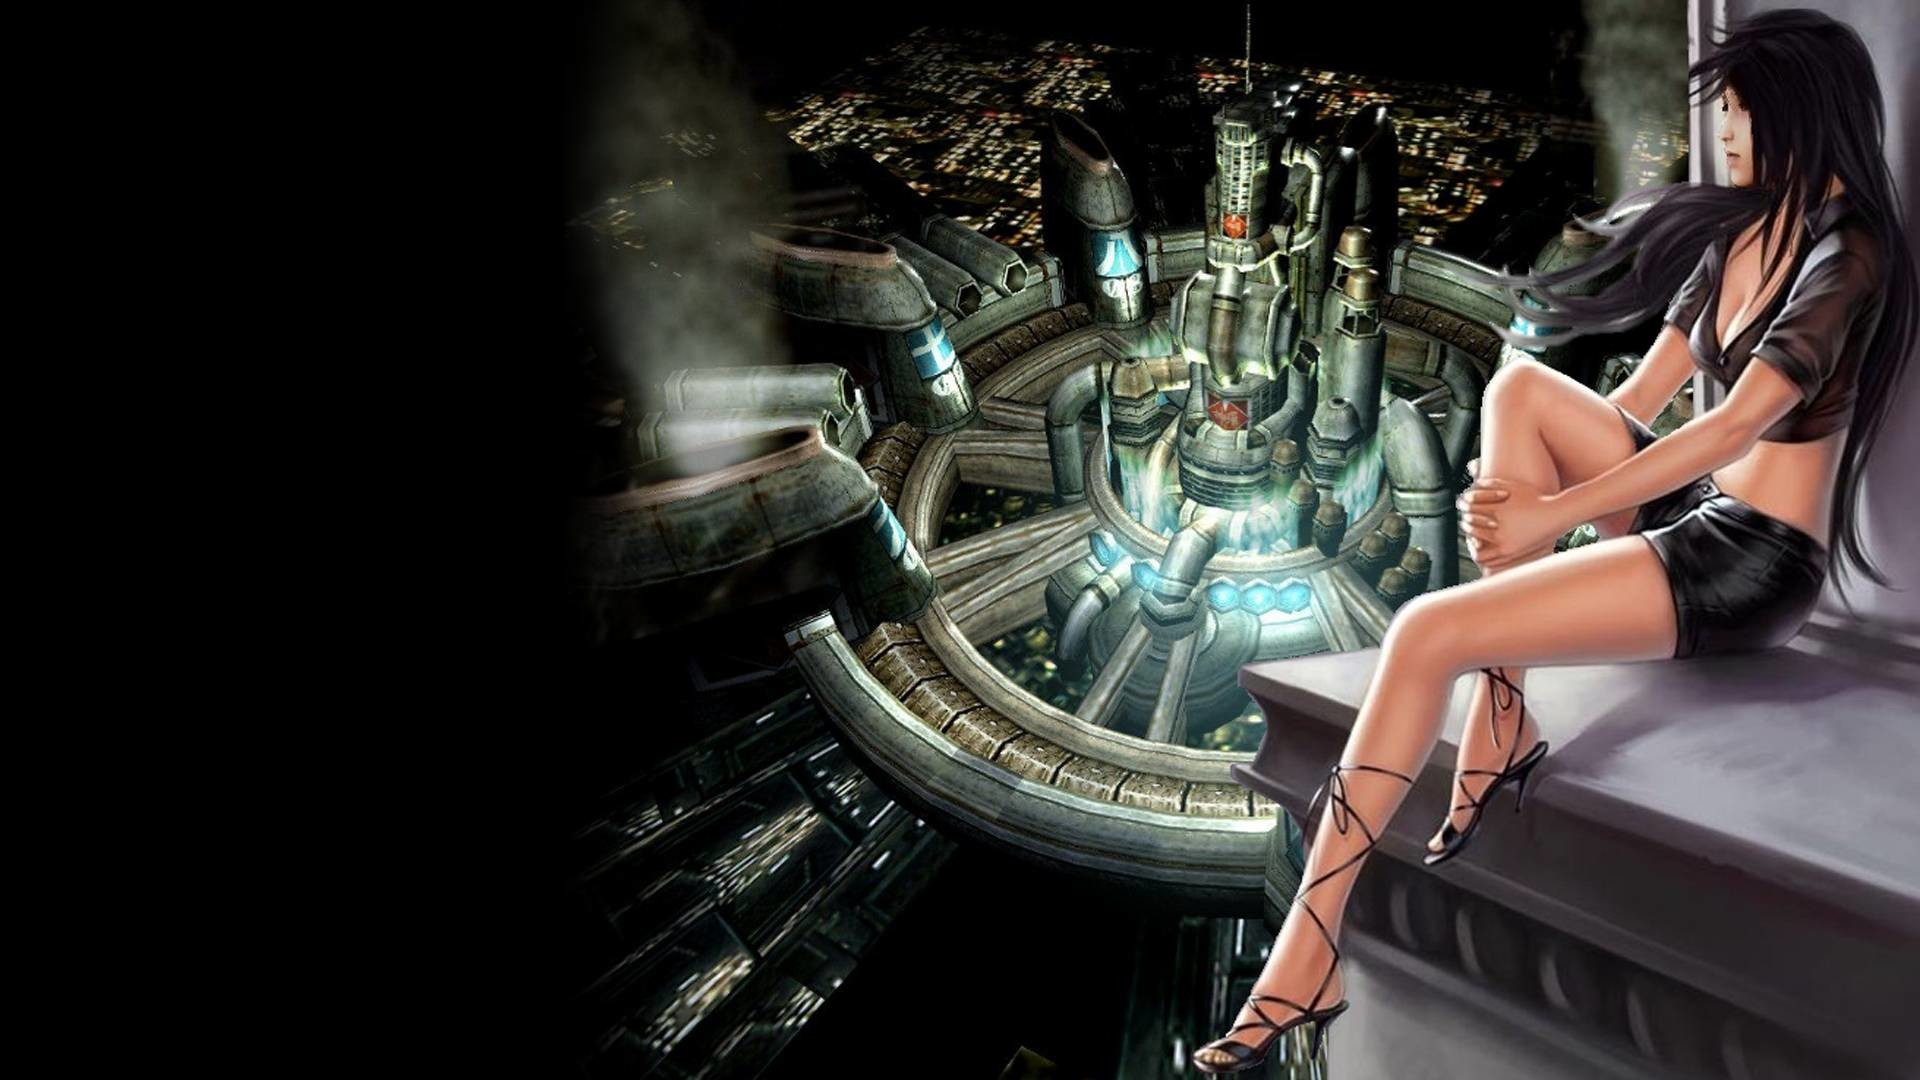 1920x1080 Final Fantasy 7 Girl Image.